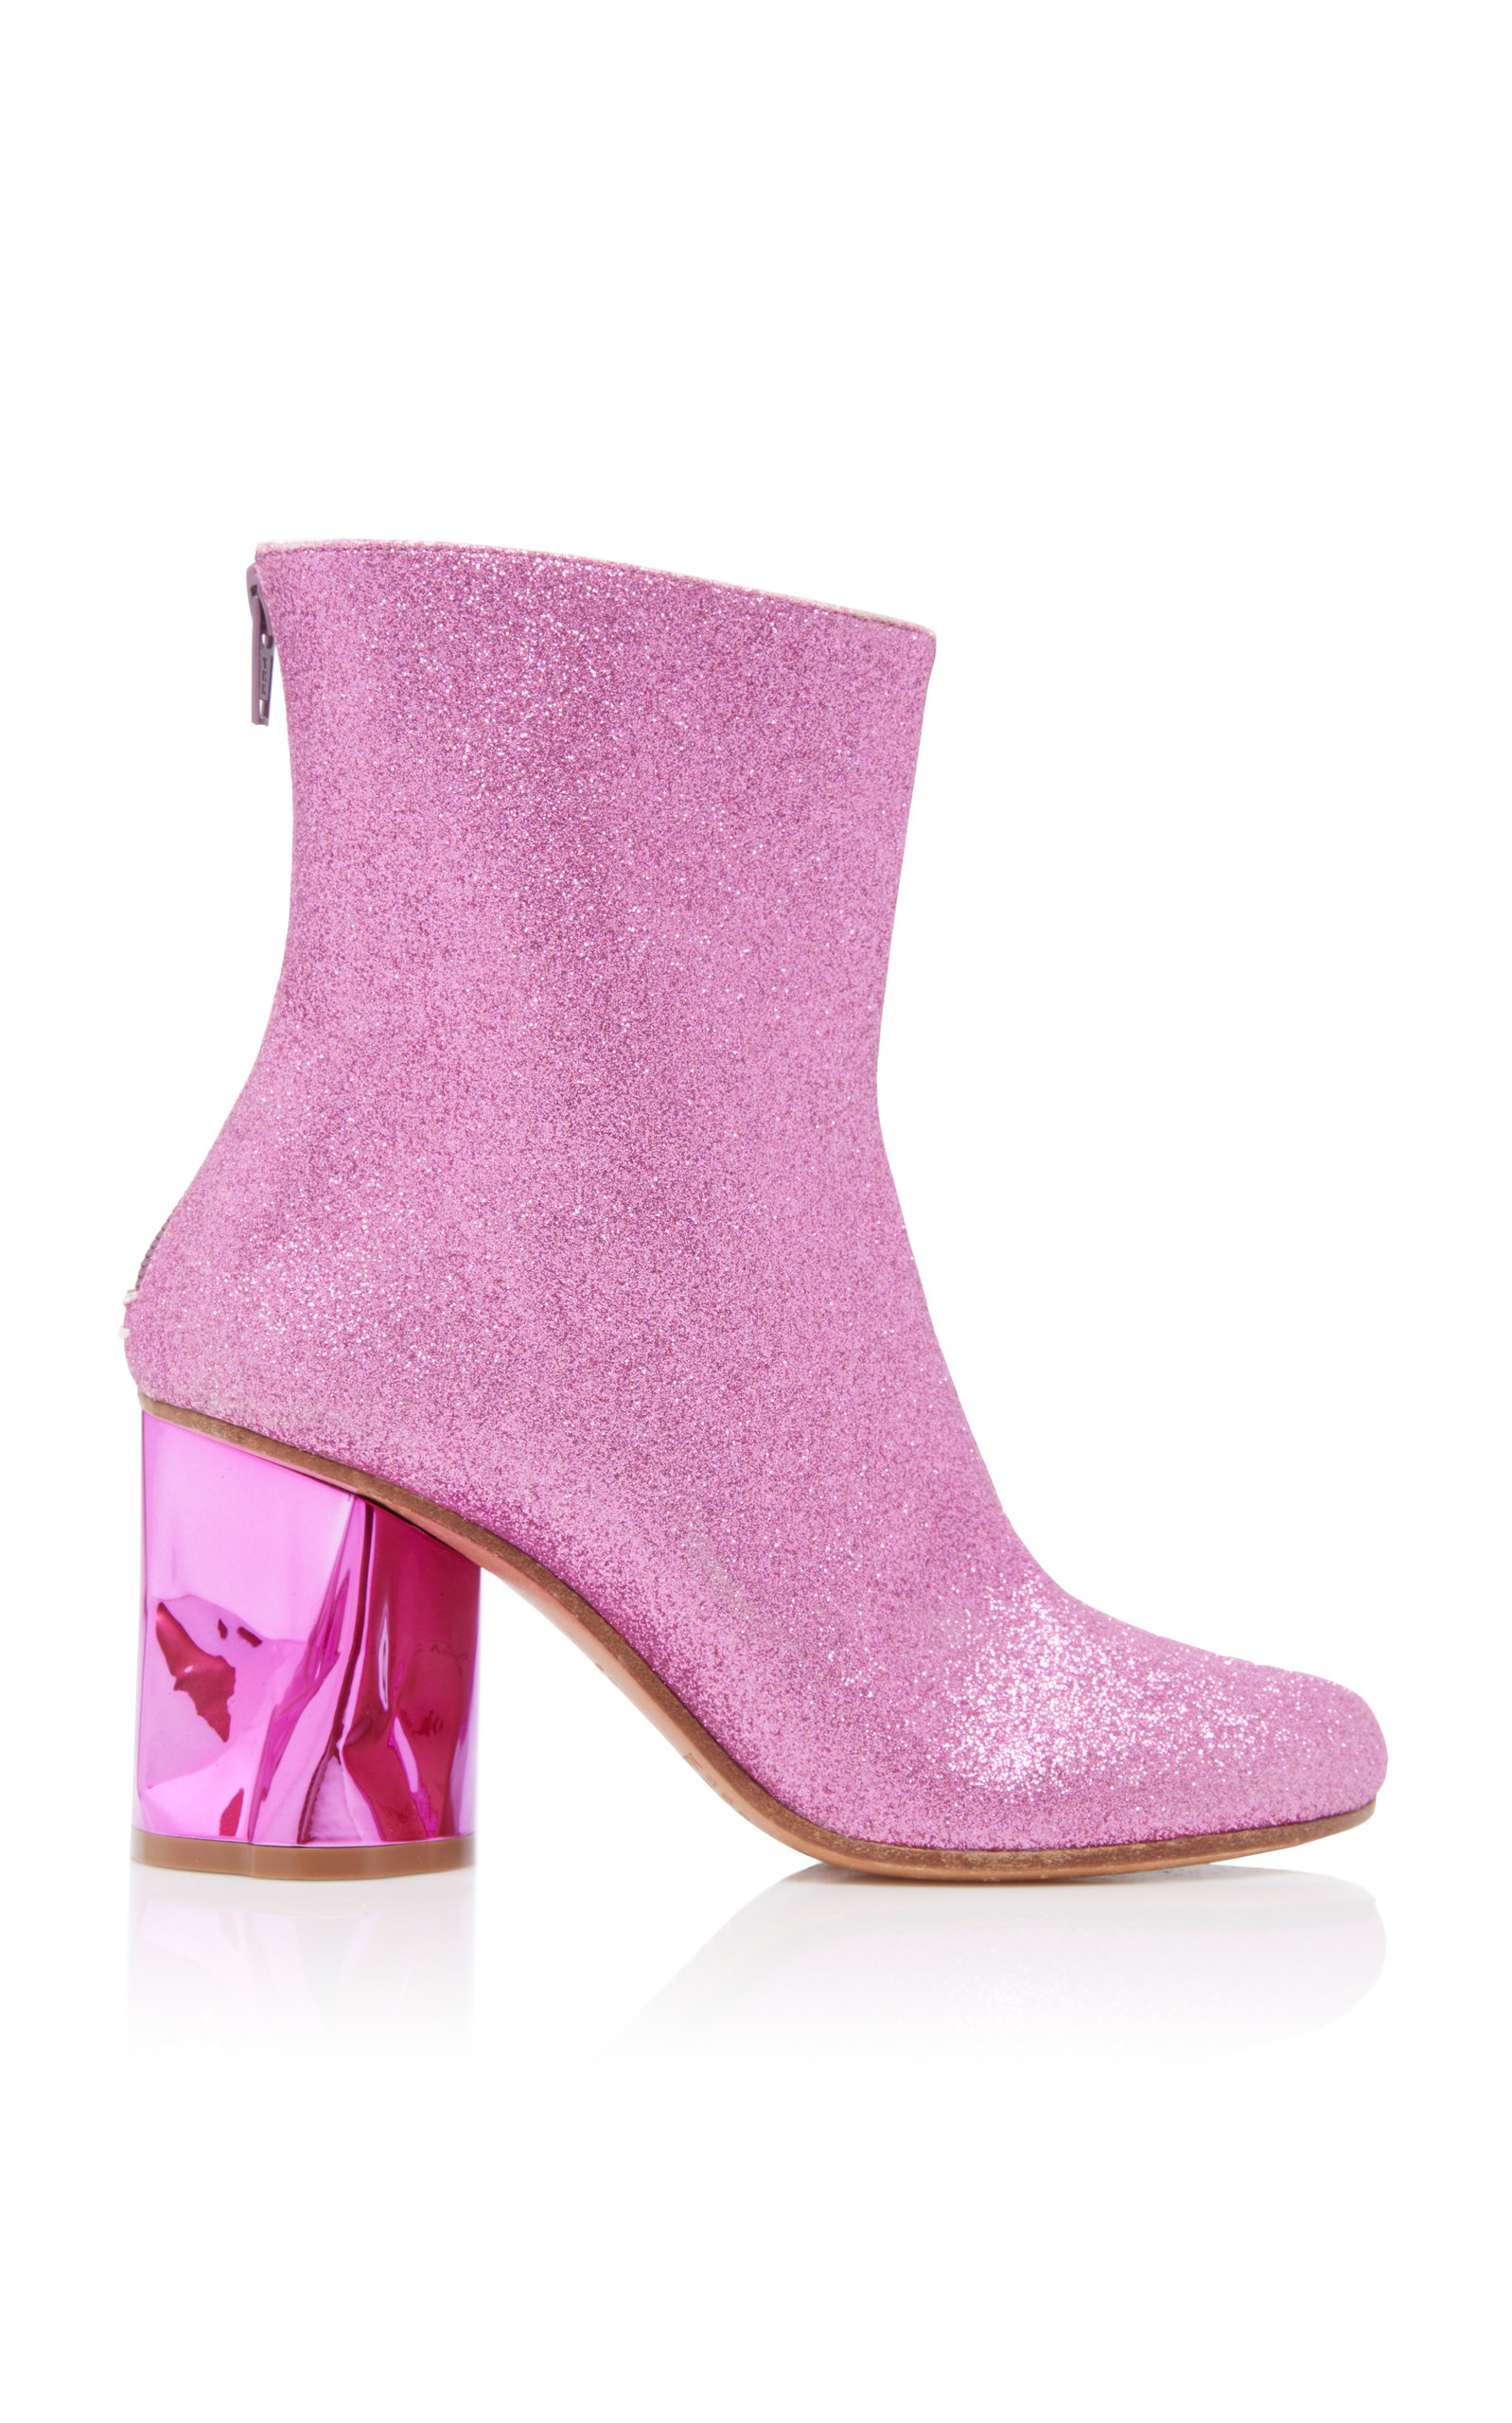 Maison Margiela Tabi Glitter Ankle Boots In Pink Modesens